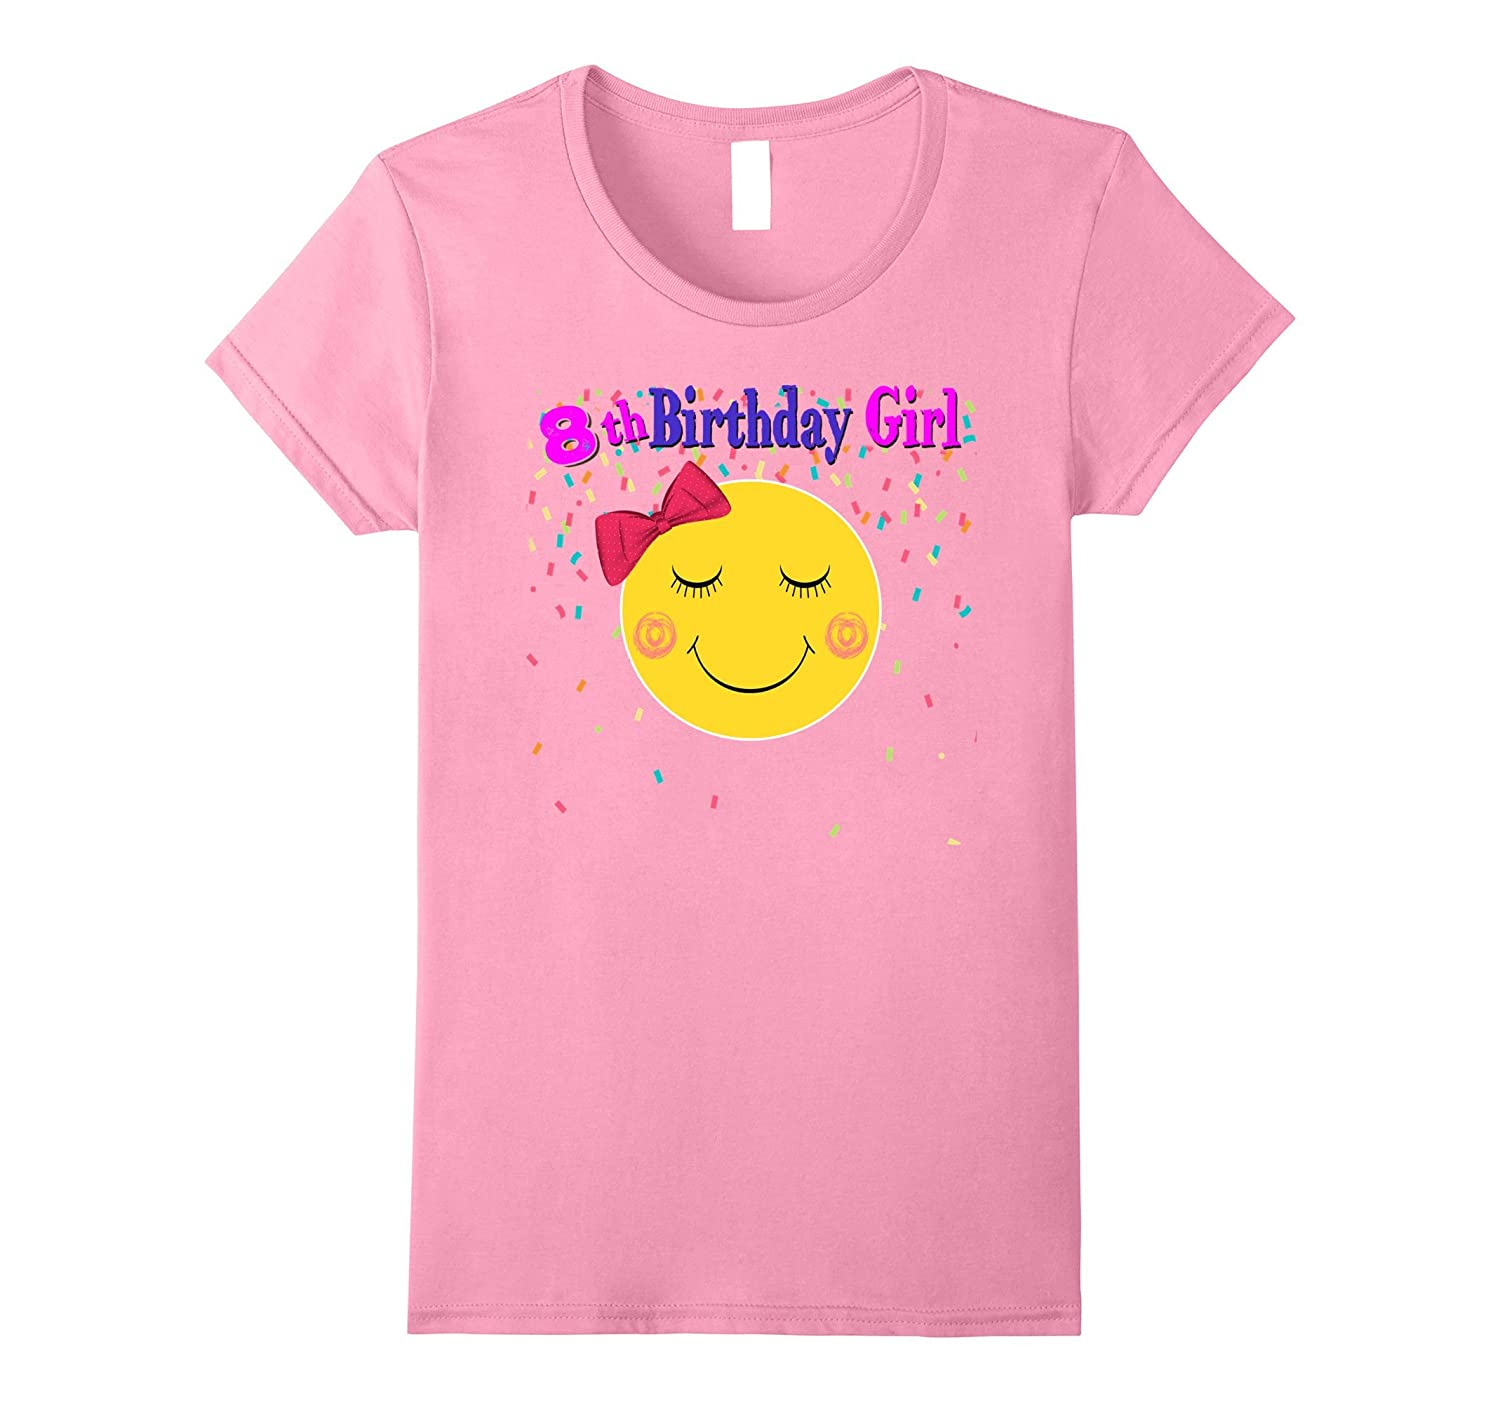 8th Birthday Girl Shirt Cute Emoji Birthday T shirt-CL